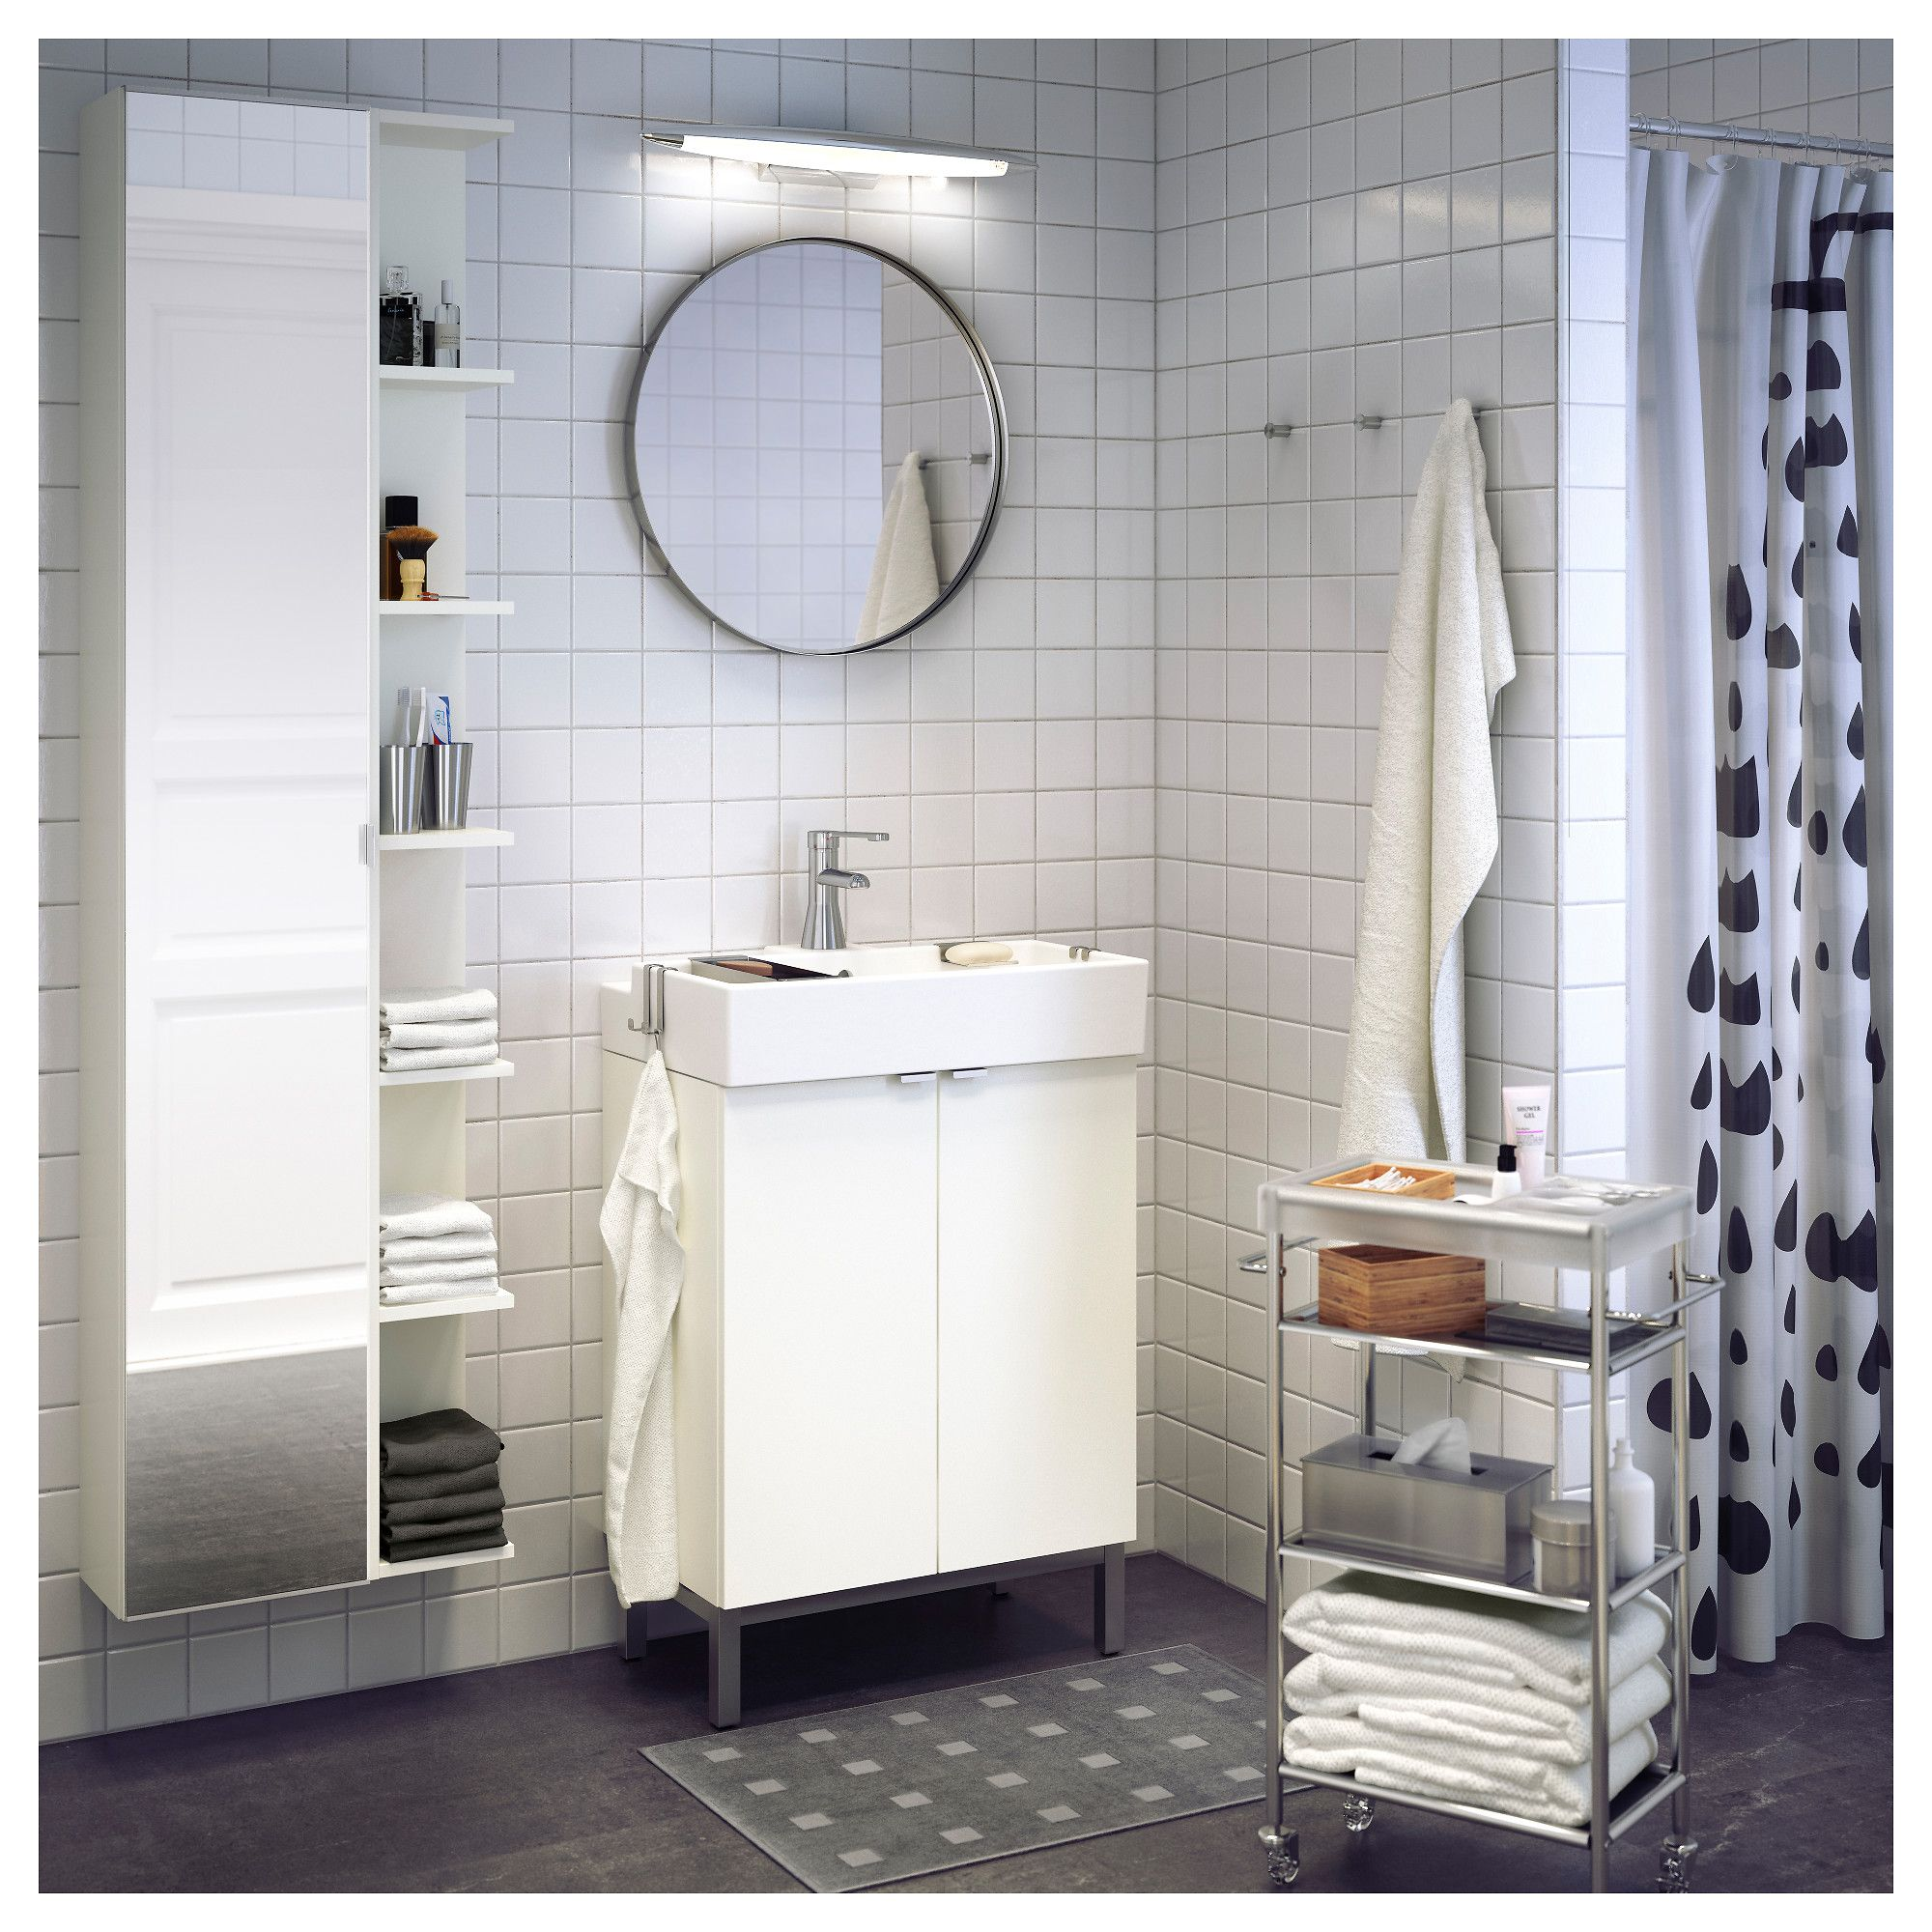 art white storage shower dynan unit small furniture bathroom en gb with in shelf perfect towel ikea a cm rail doors products